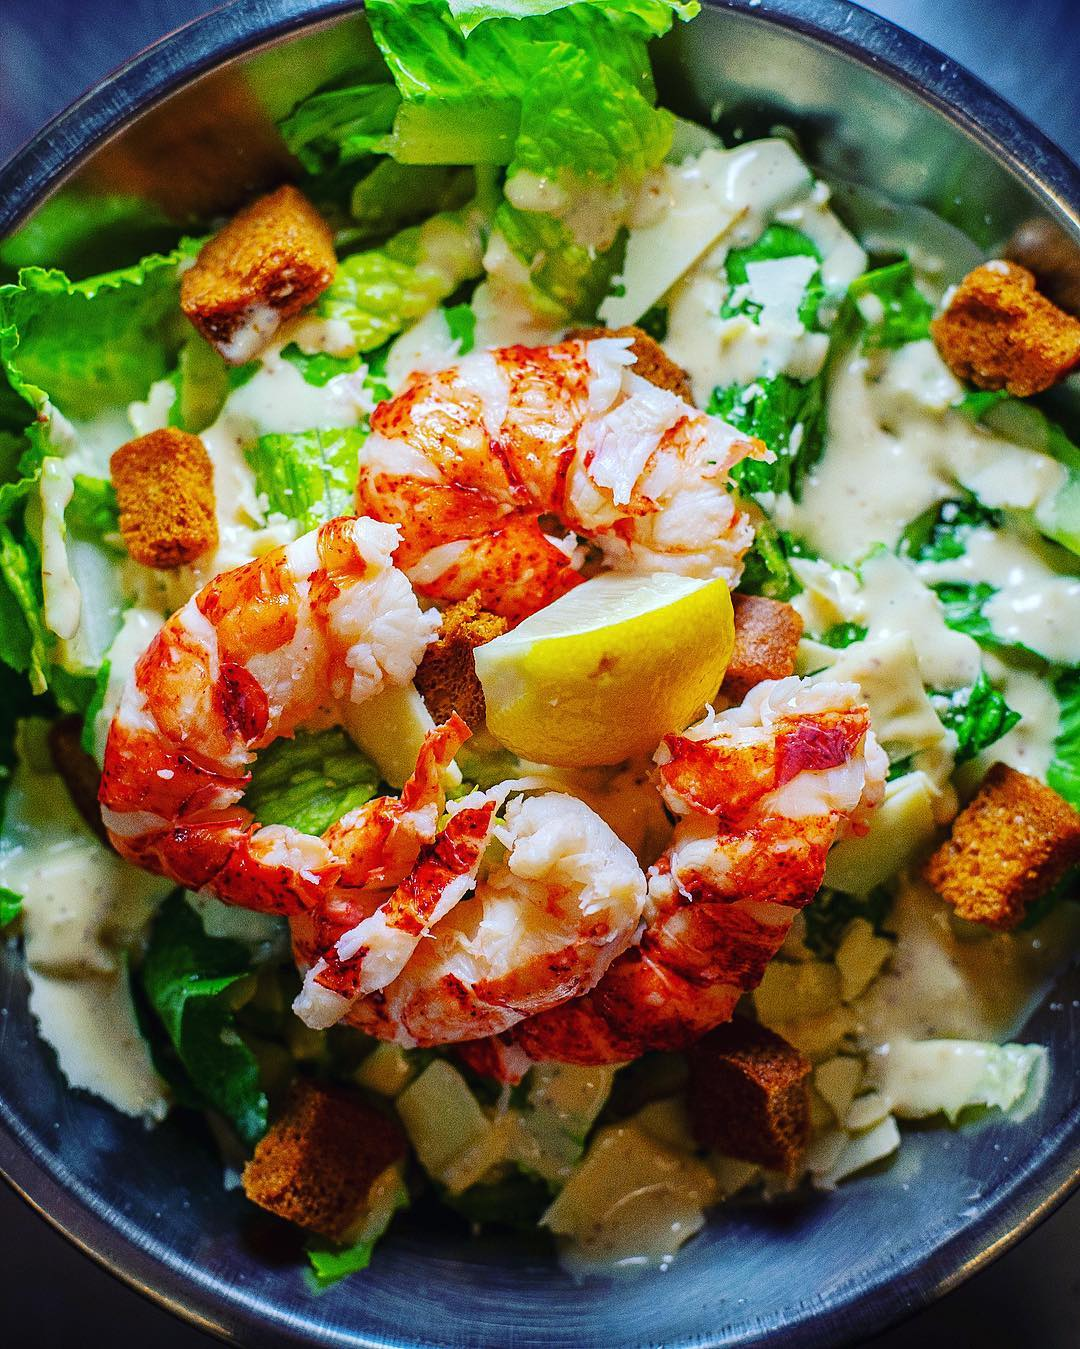 fresh shrimp with lemon wedge on leafy salad